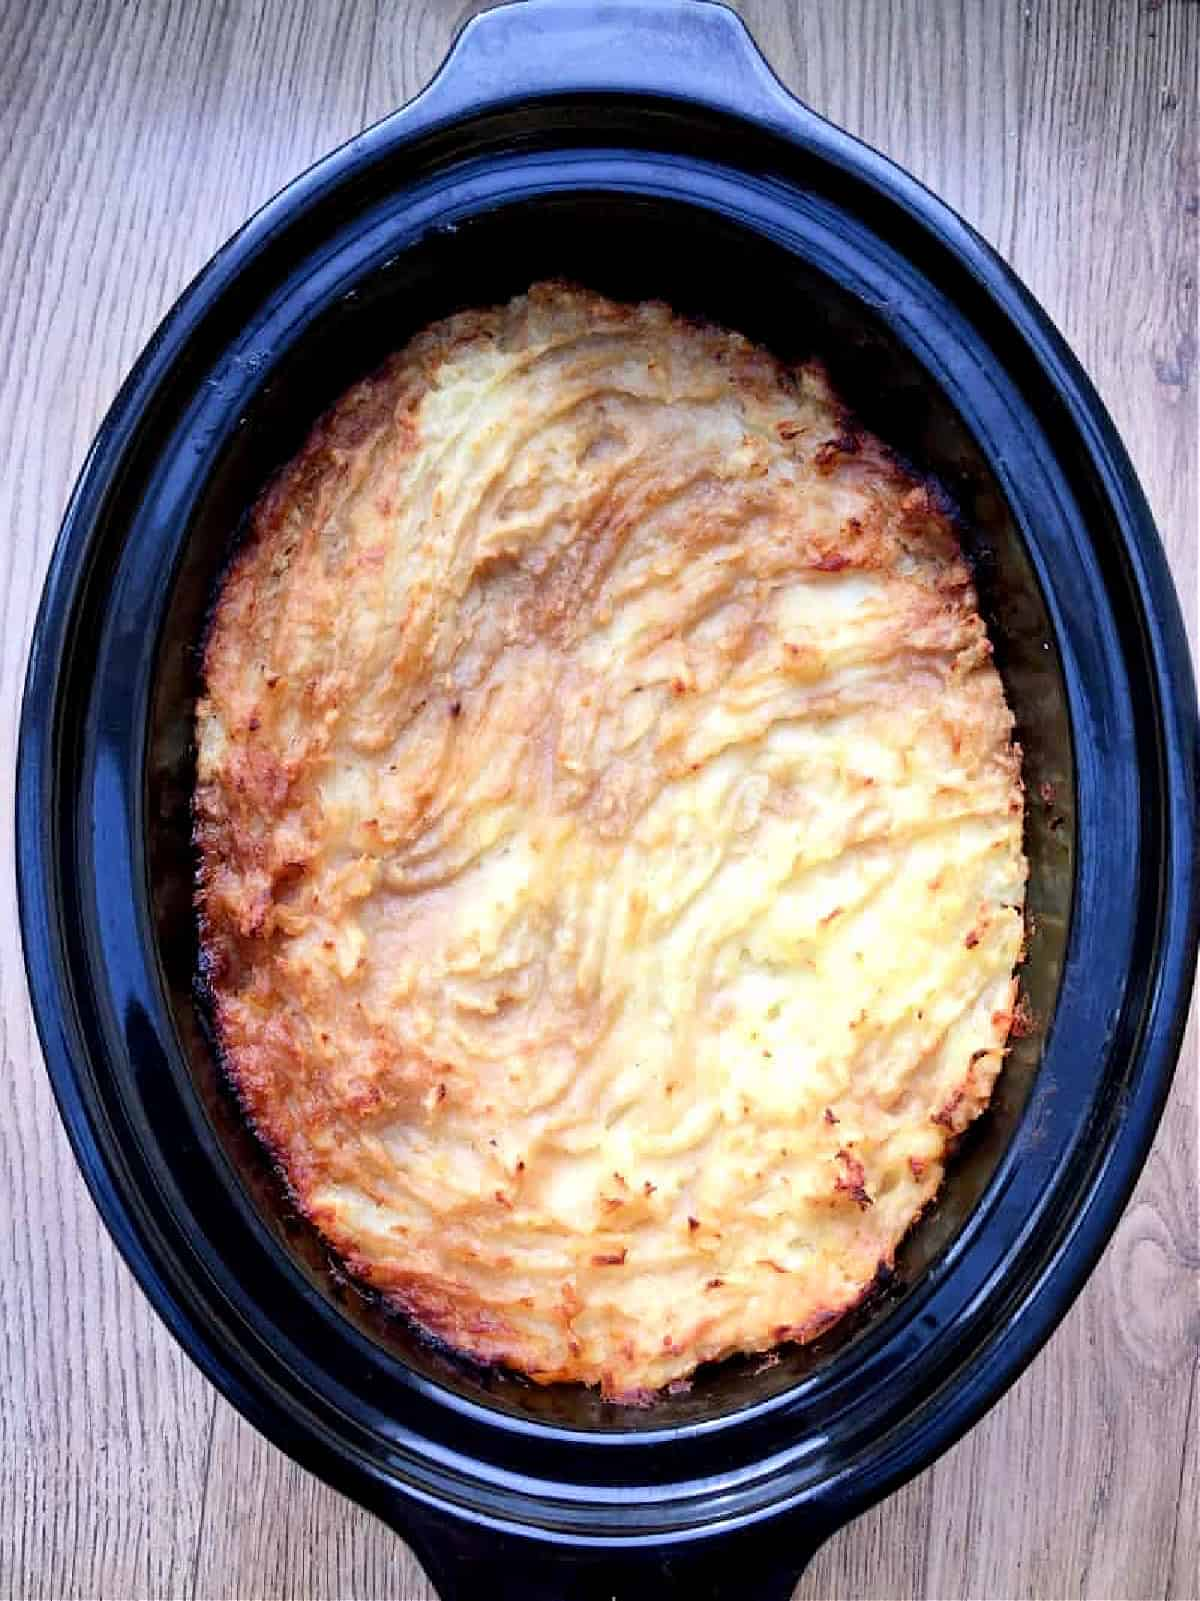 View of cottage pie with browned top in slow cooker pot.